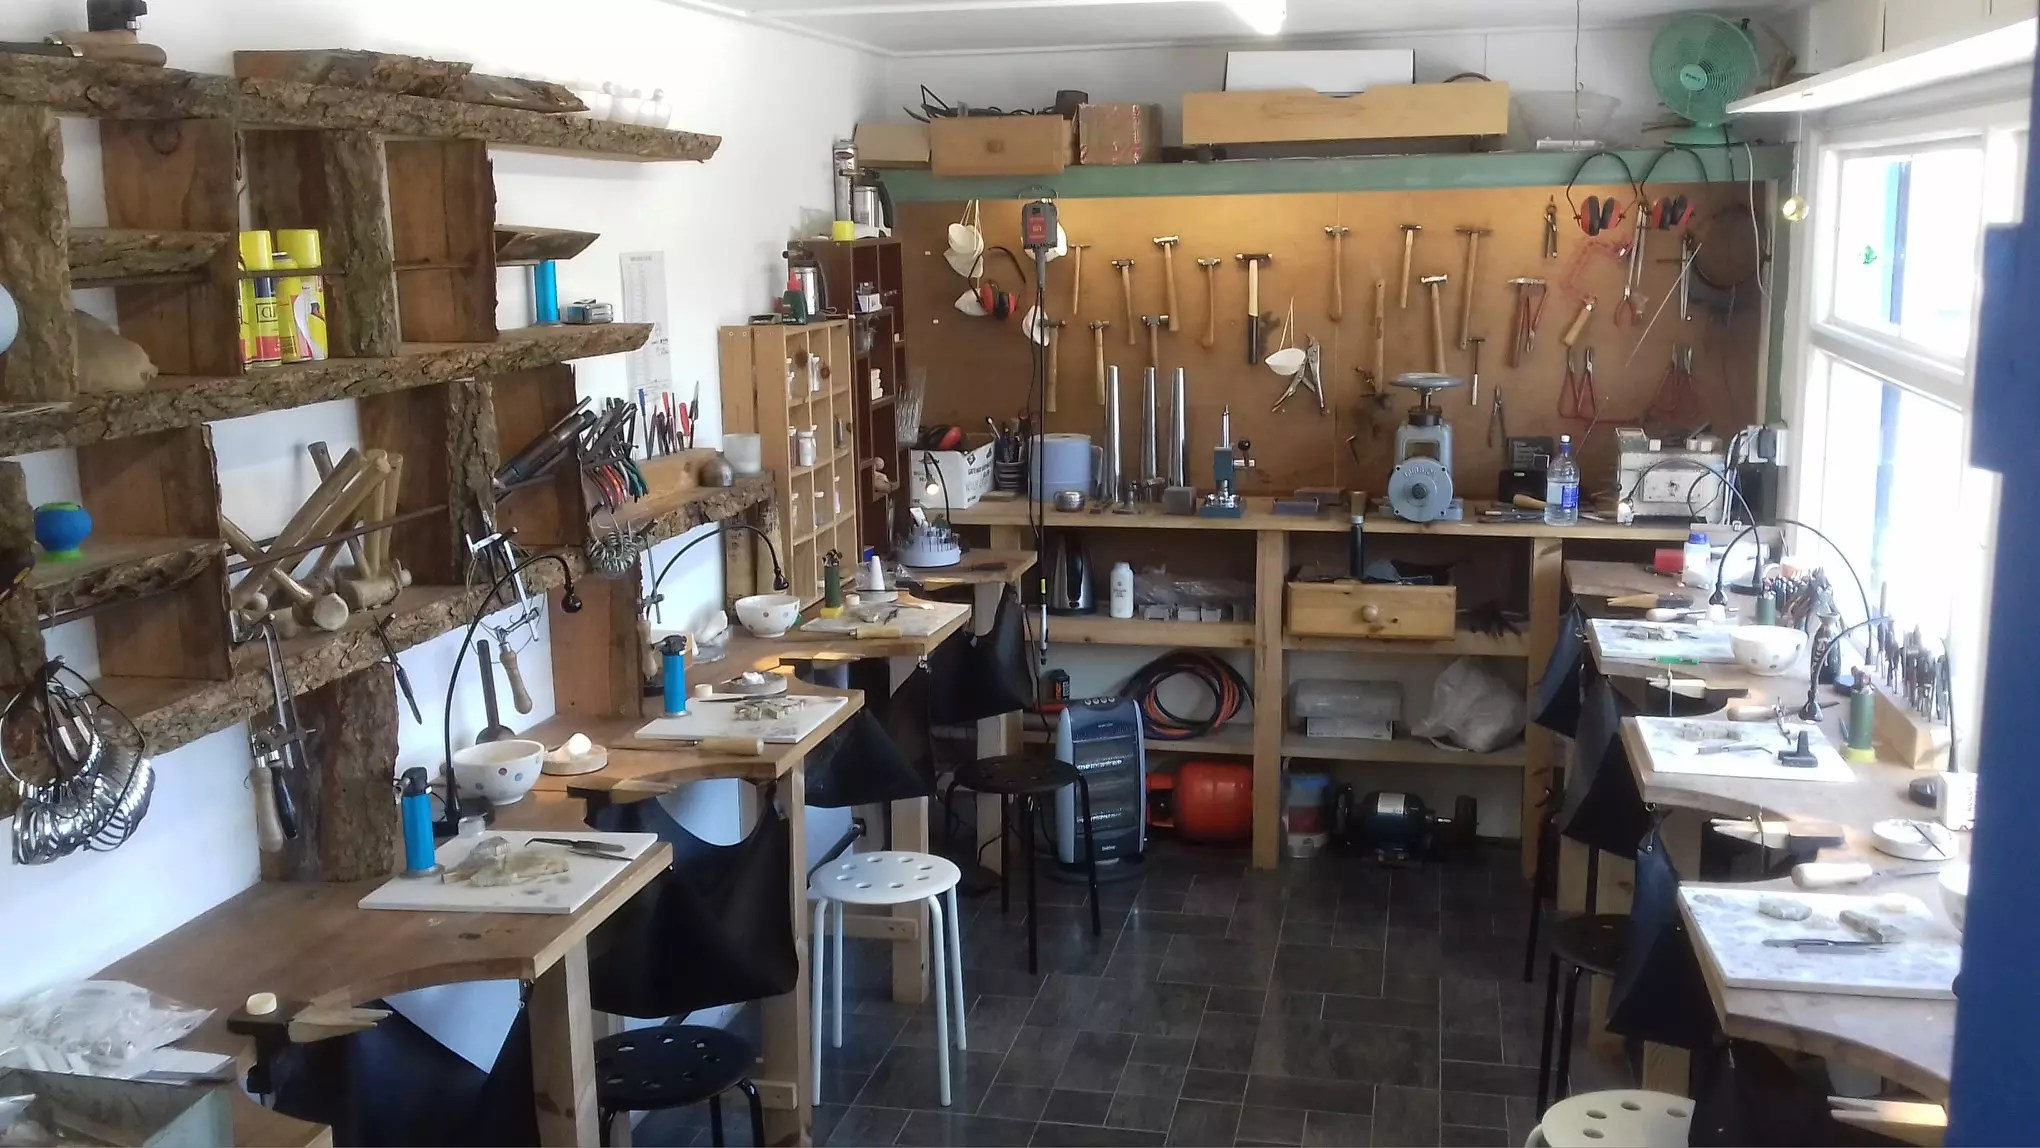 Businesses for sale: Attractive business opportunity in picturesque Cornish fishing village